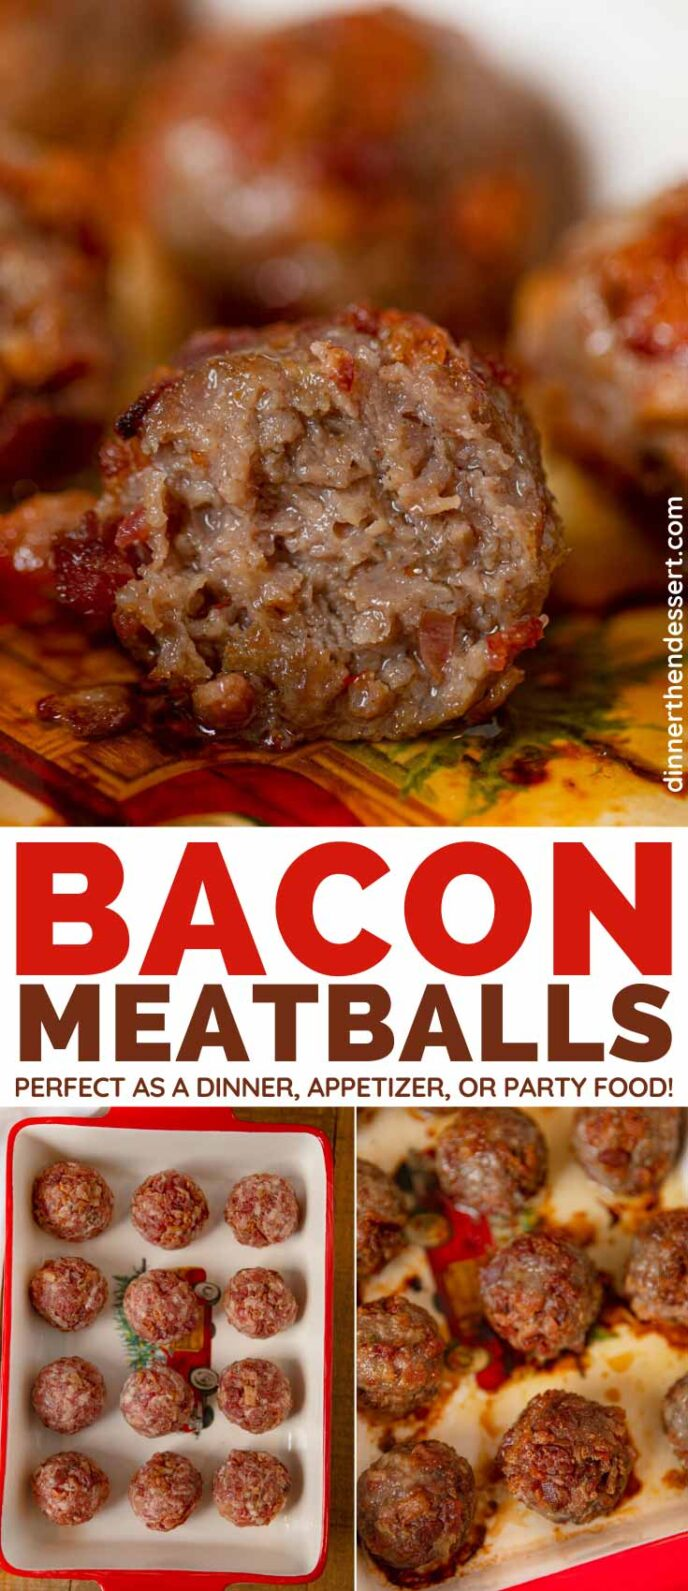 Bacon Meatballs collage